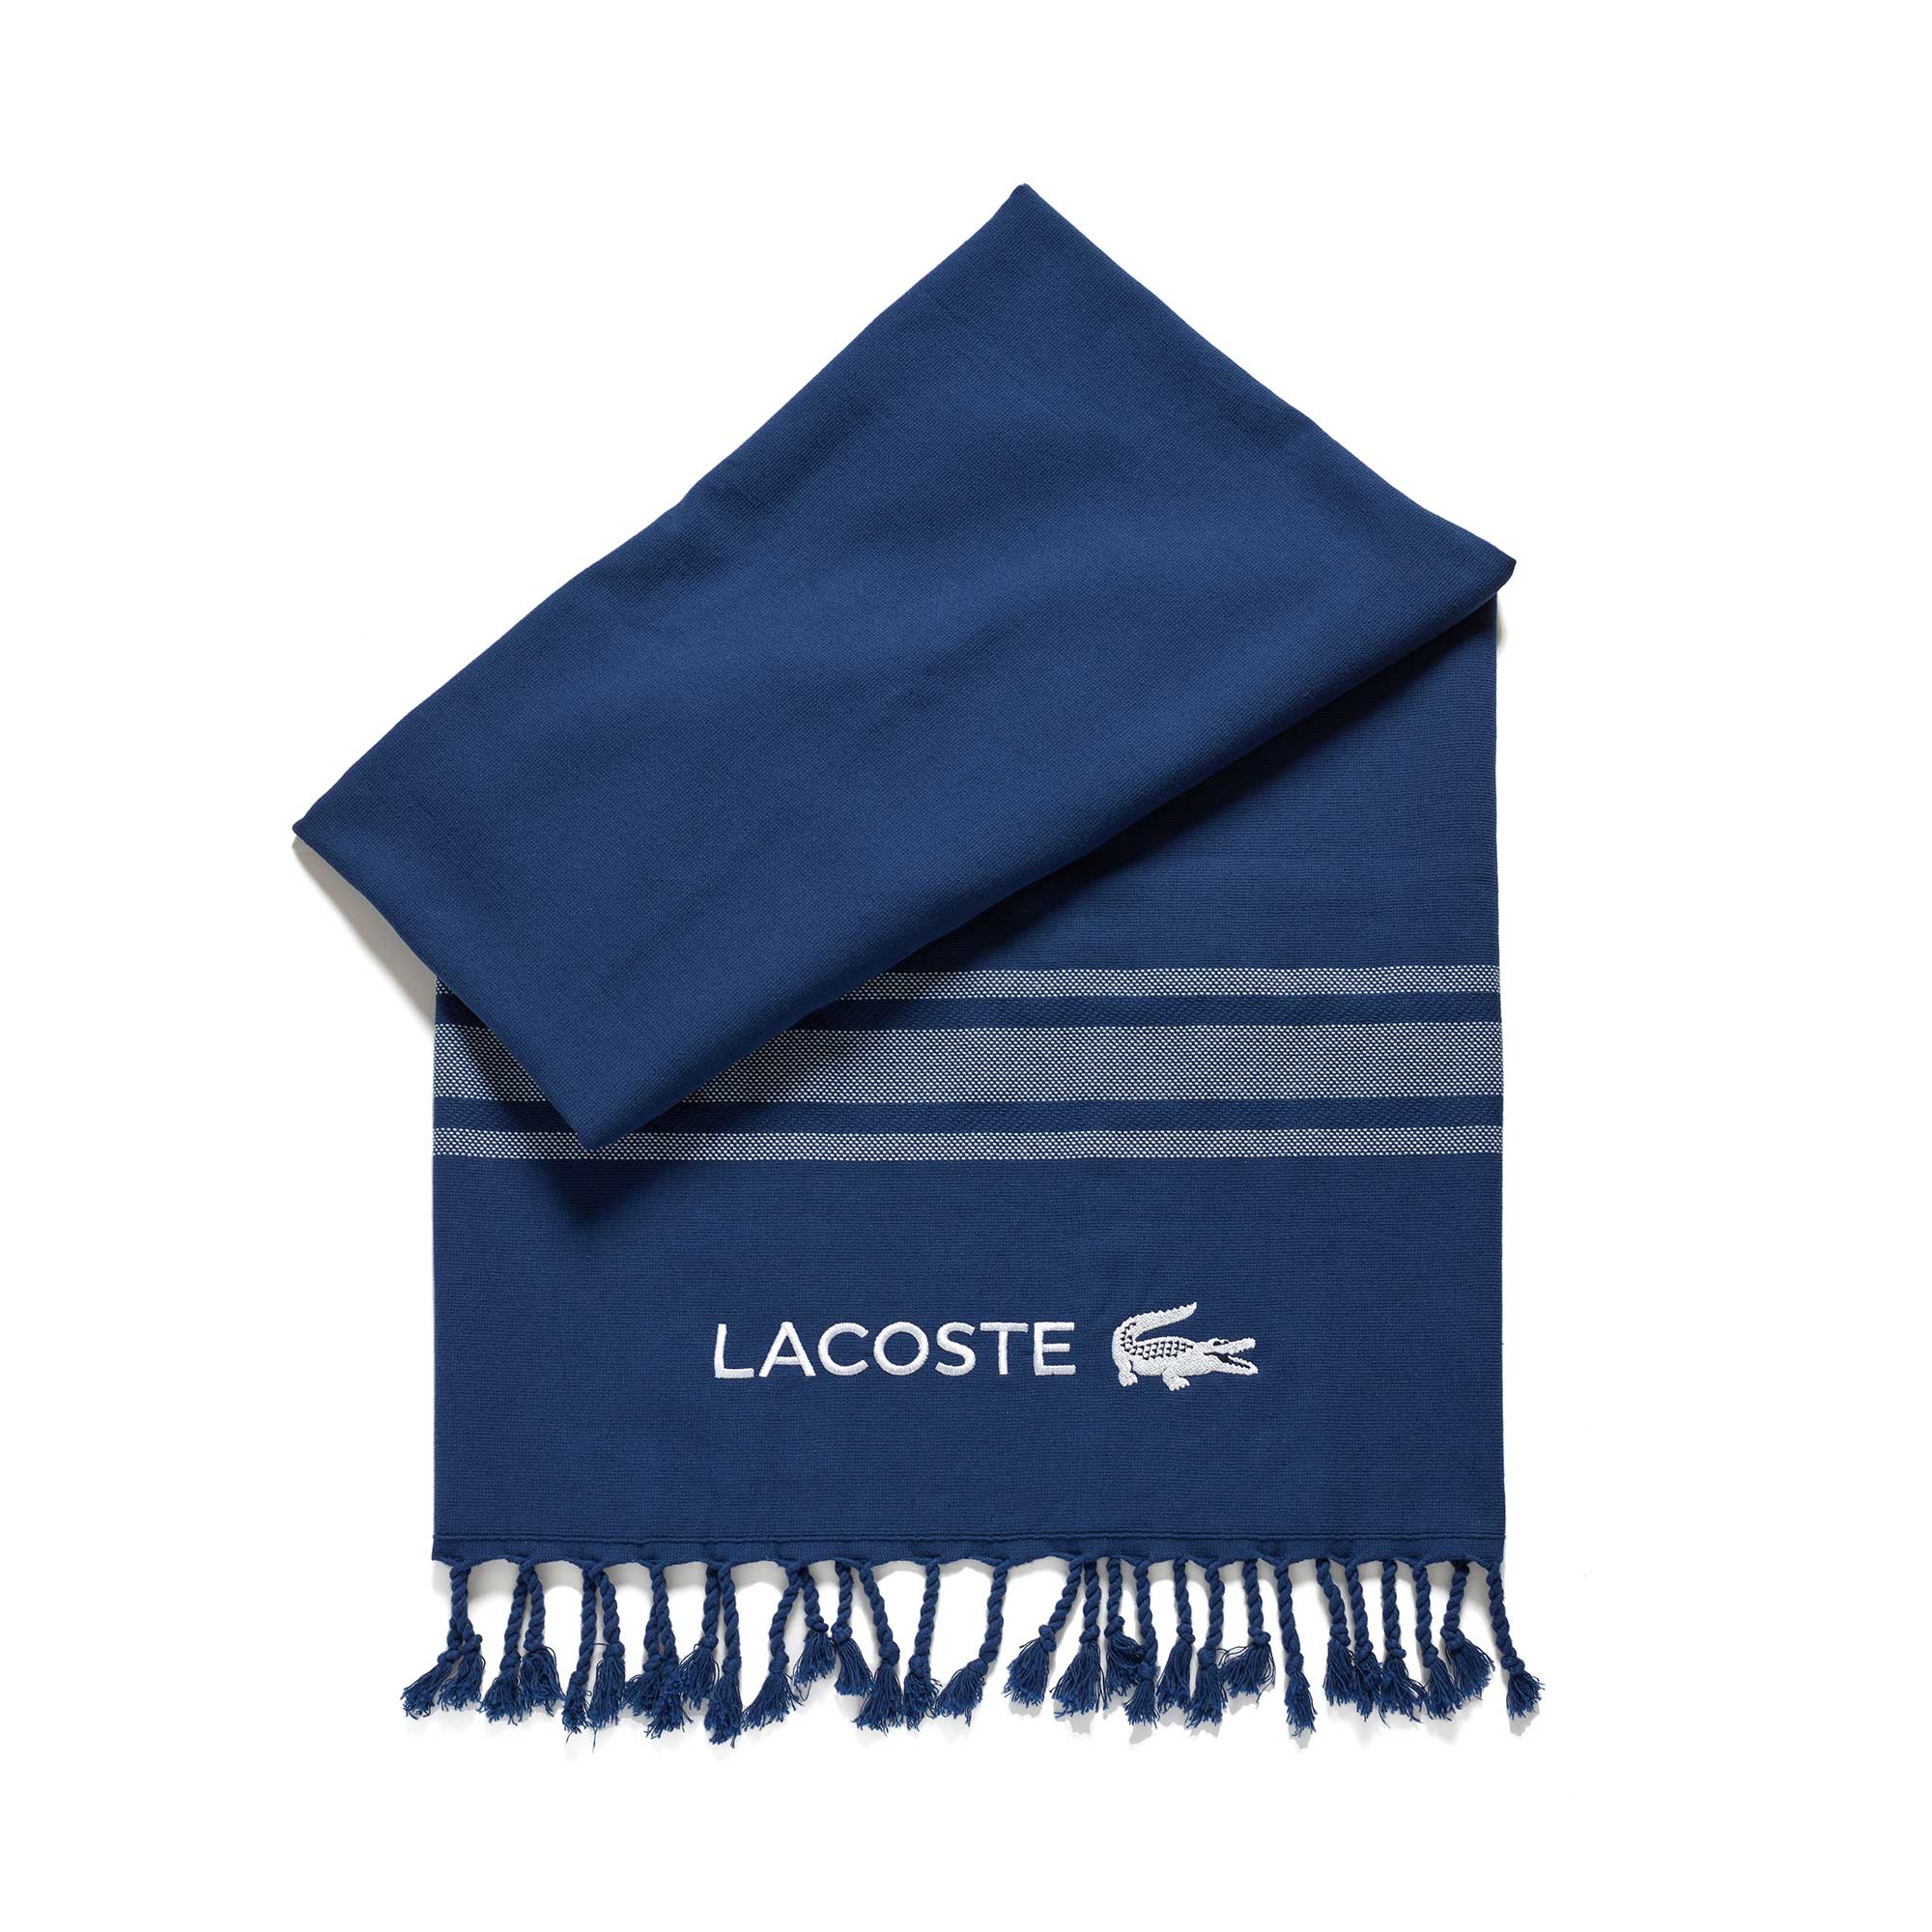 Exclusive Lacoste Beach Towel